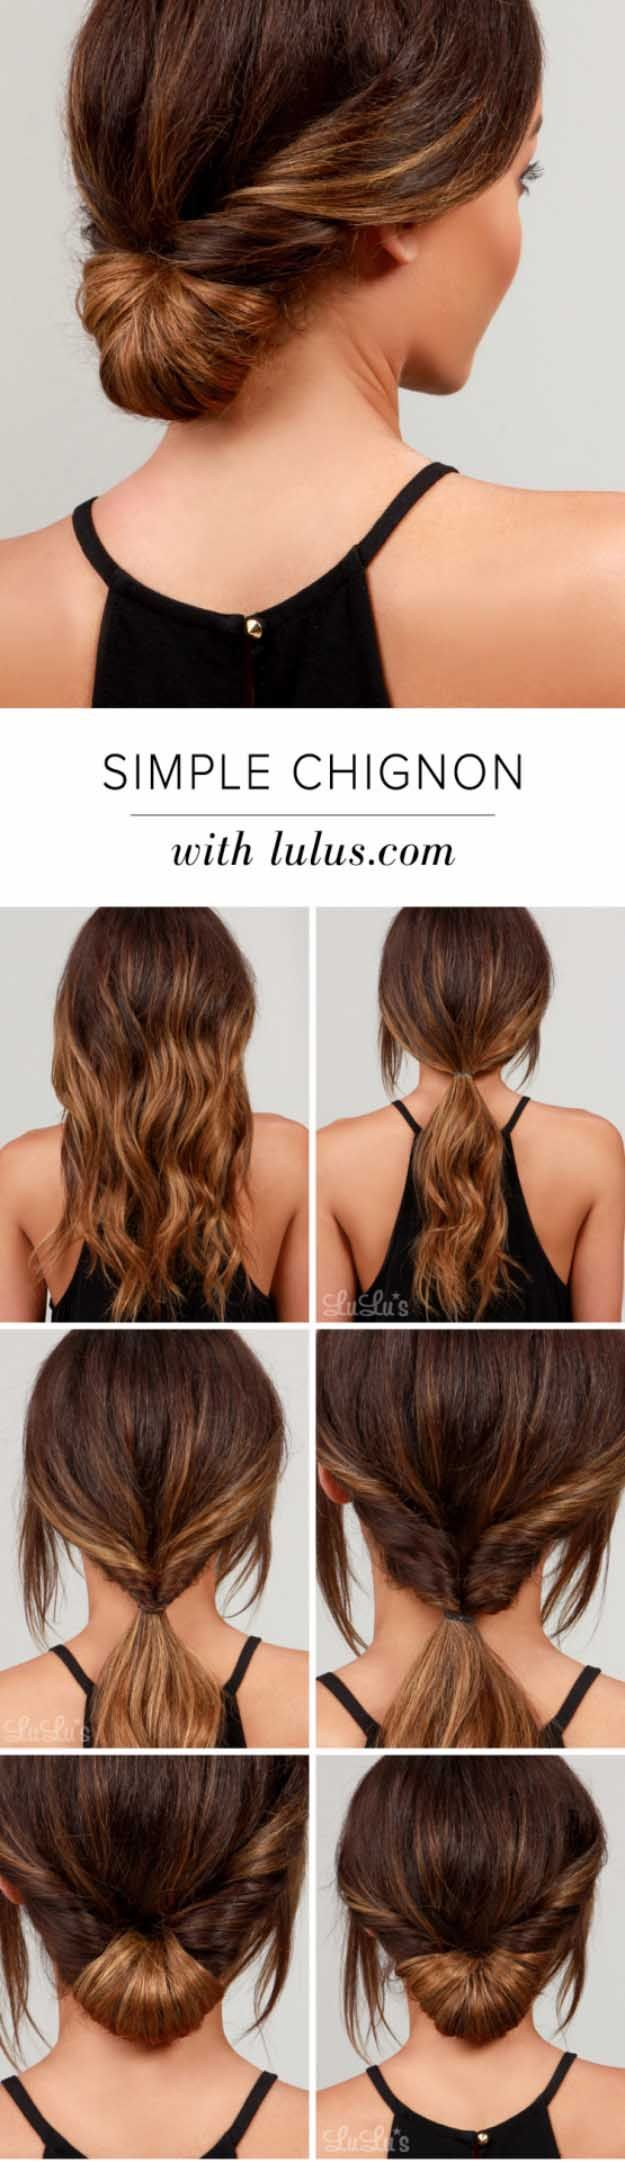 Glam Ponytail Tutorials - Simple Chignon Hair Tutorial- Simple Hairstyles and Pony Tails, Messy Buns, Dutch Braids and Top Knot Updo Looks - With and Without Bobby Pins - Awesome Looks for Short Hair and Girls with Curls - thegoddess.com/glam-ponytail-tutorials